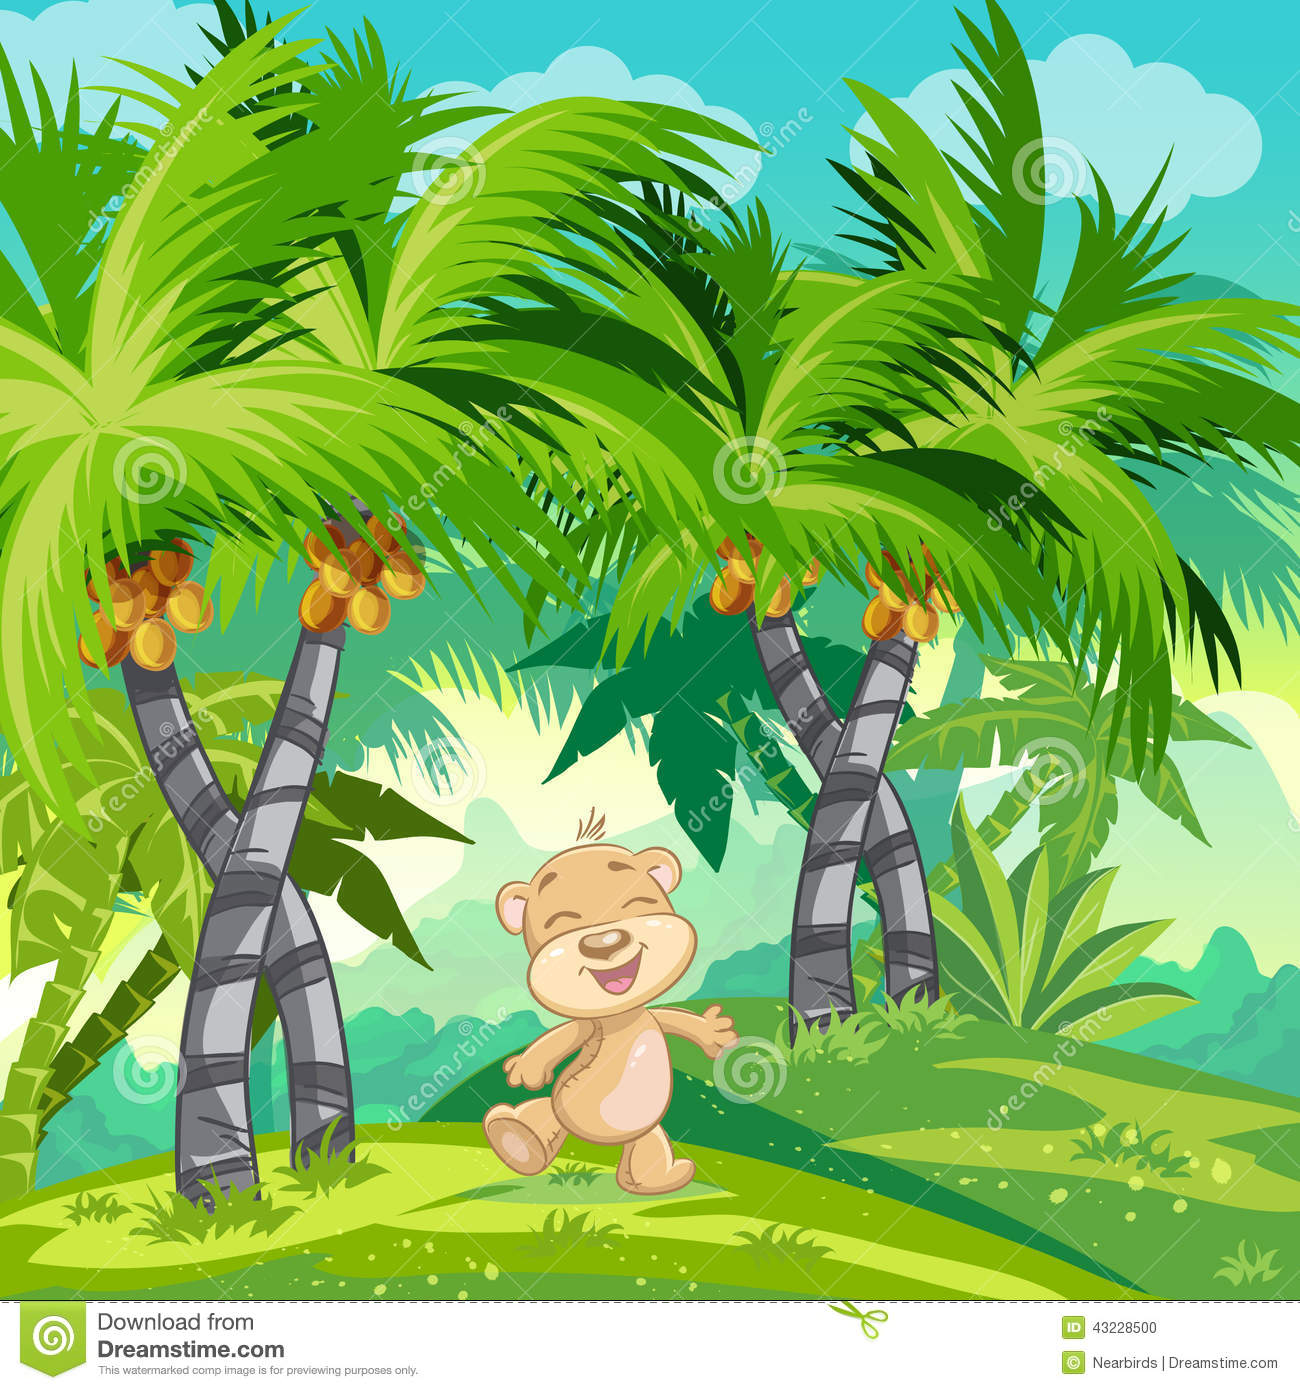 Children s illustration with a happy teddy bear in the jungle